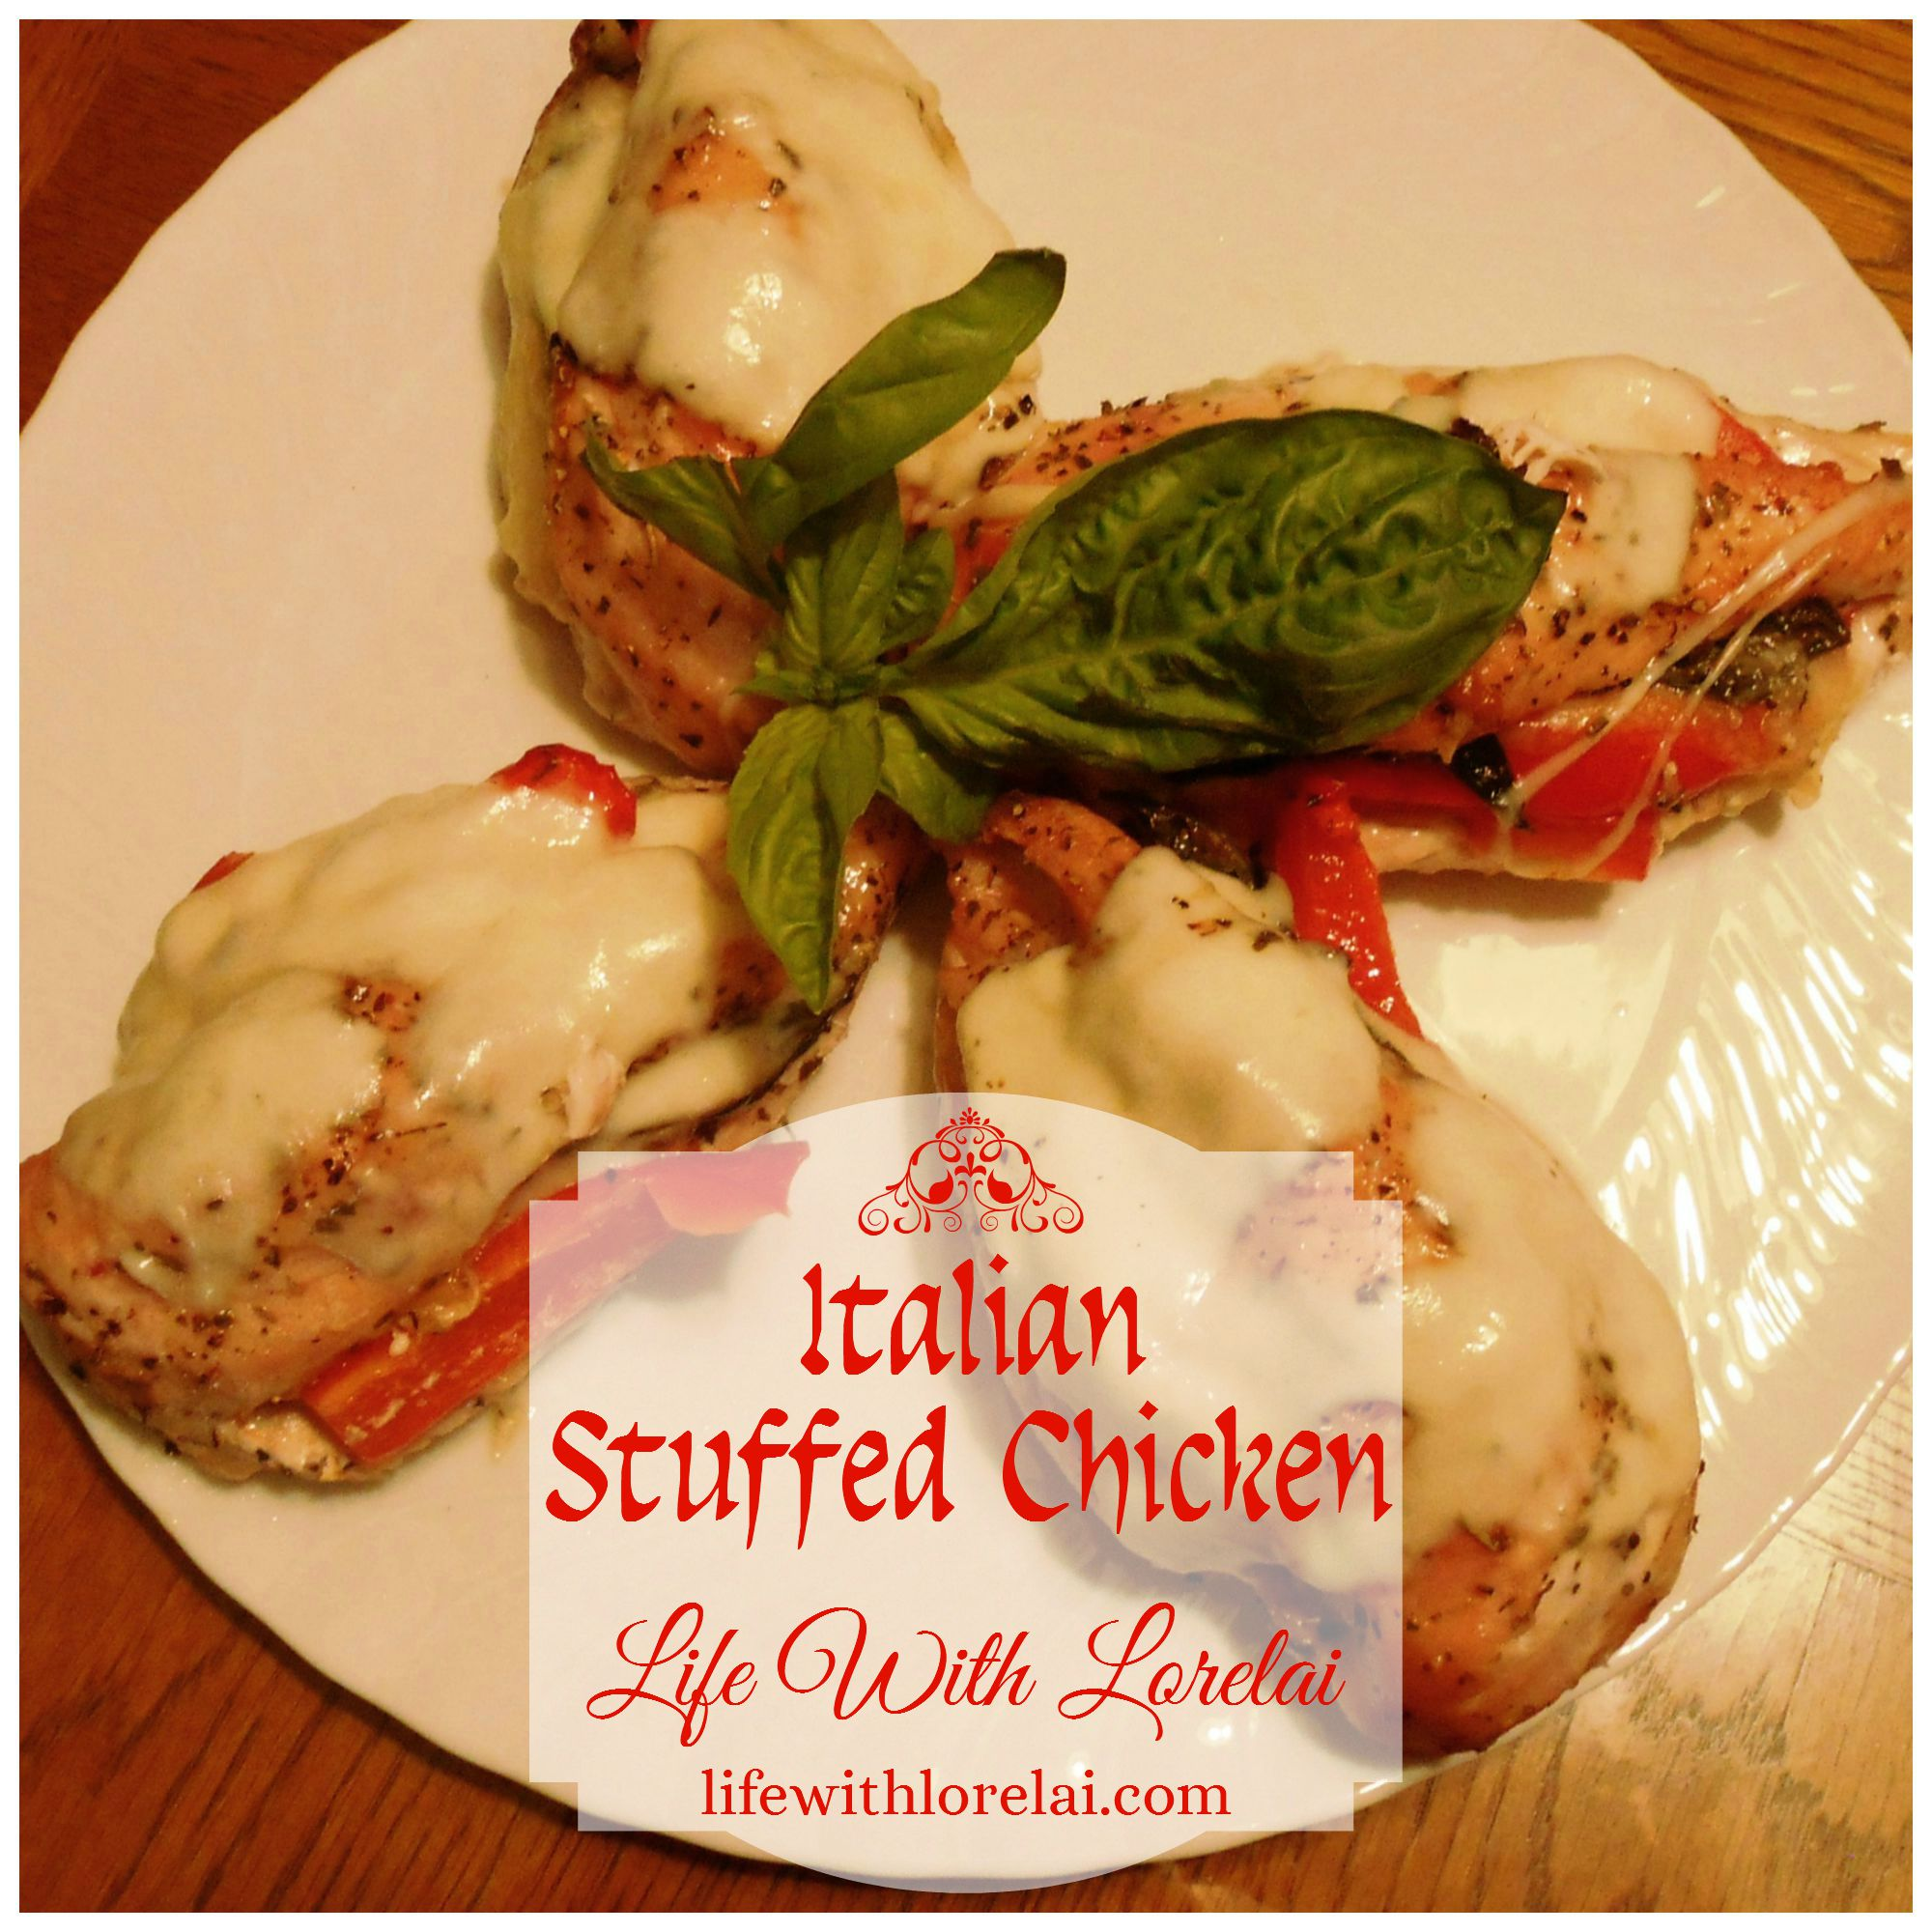 Italian Stuffed Chicken - Life With Lorelai